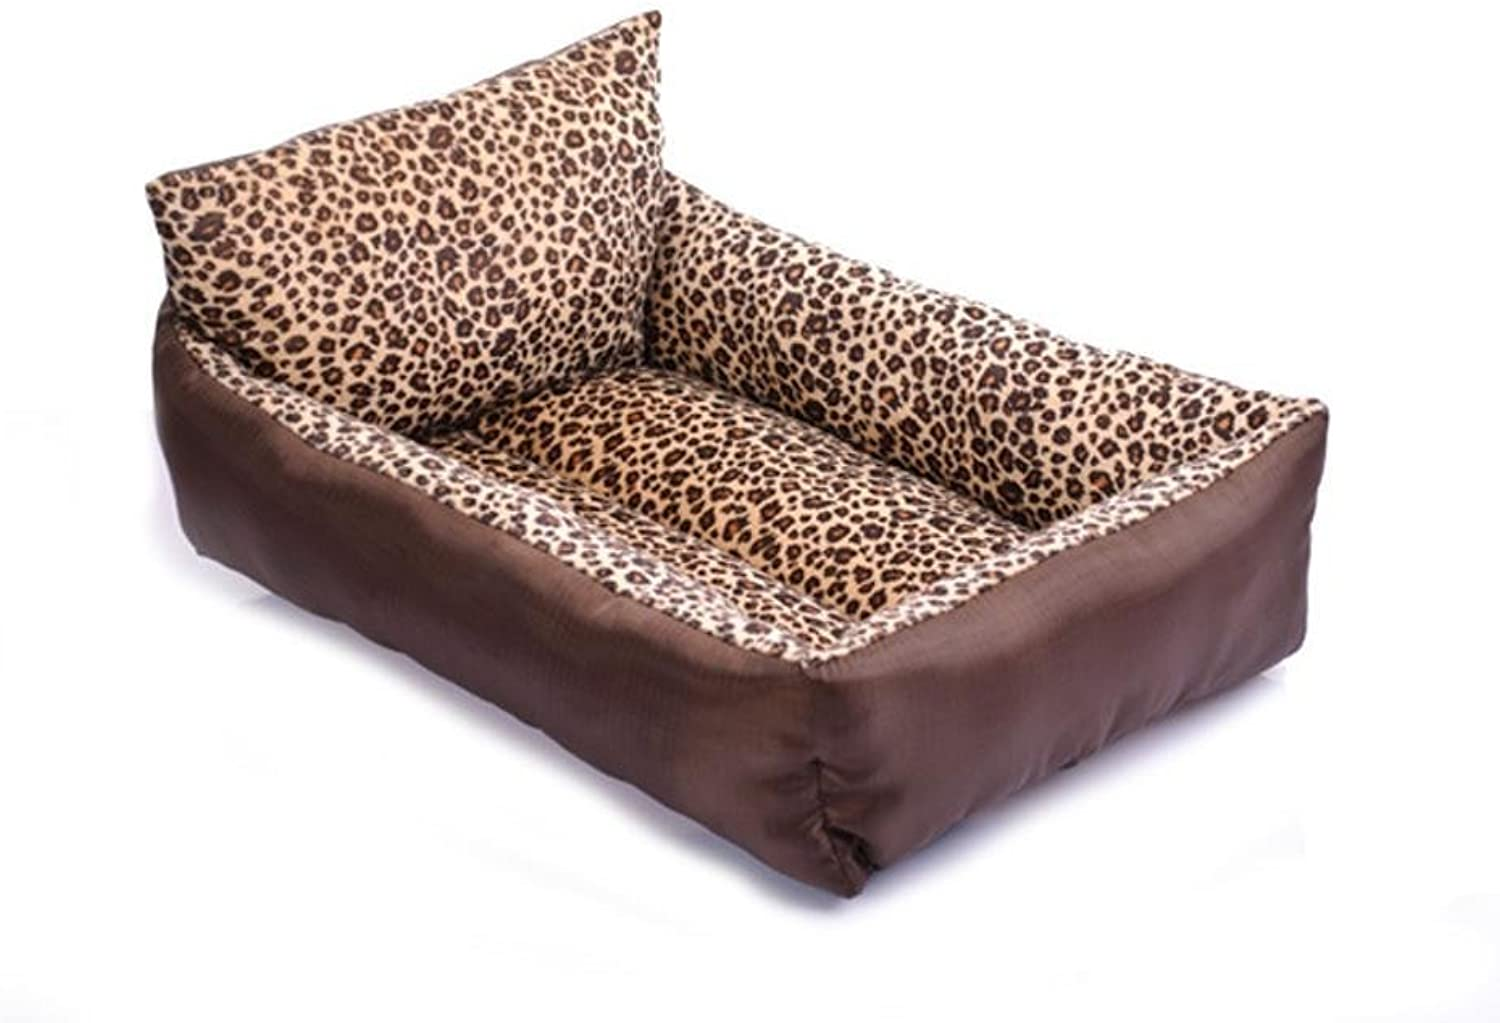 MONFS HOME Pet Bolster Dog Bed Comfort Cloth pillow with leopard pattern pet litter bed (Size   cm)